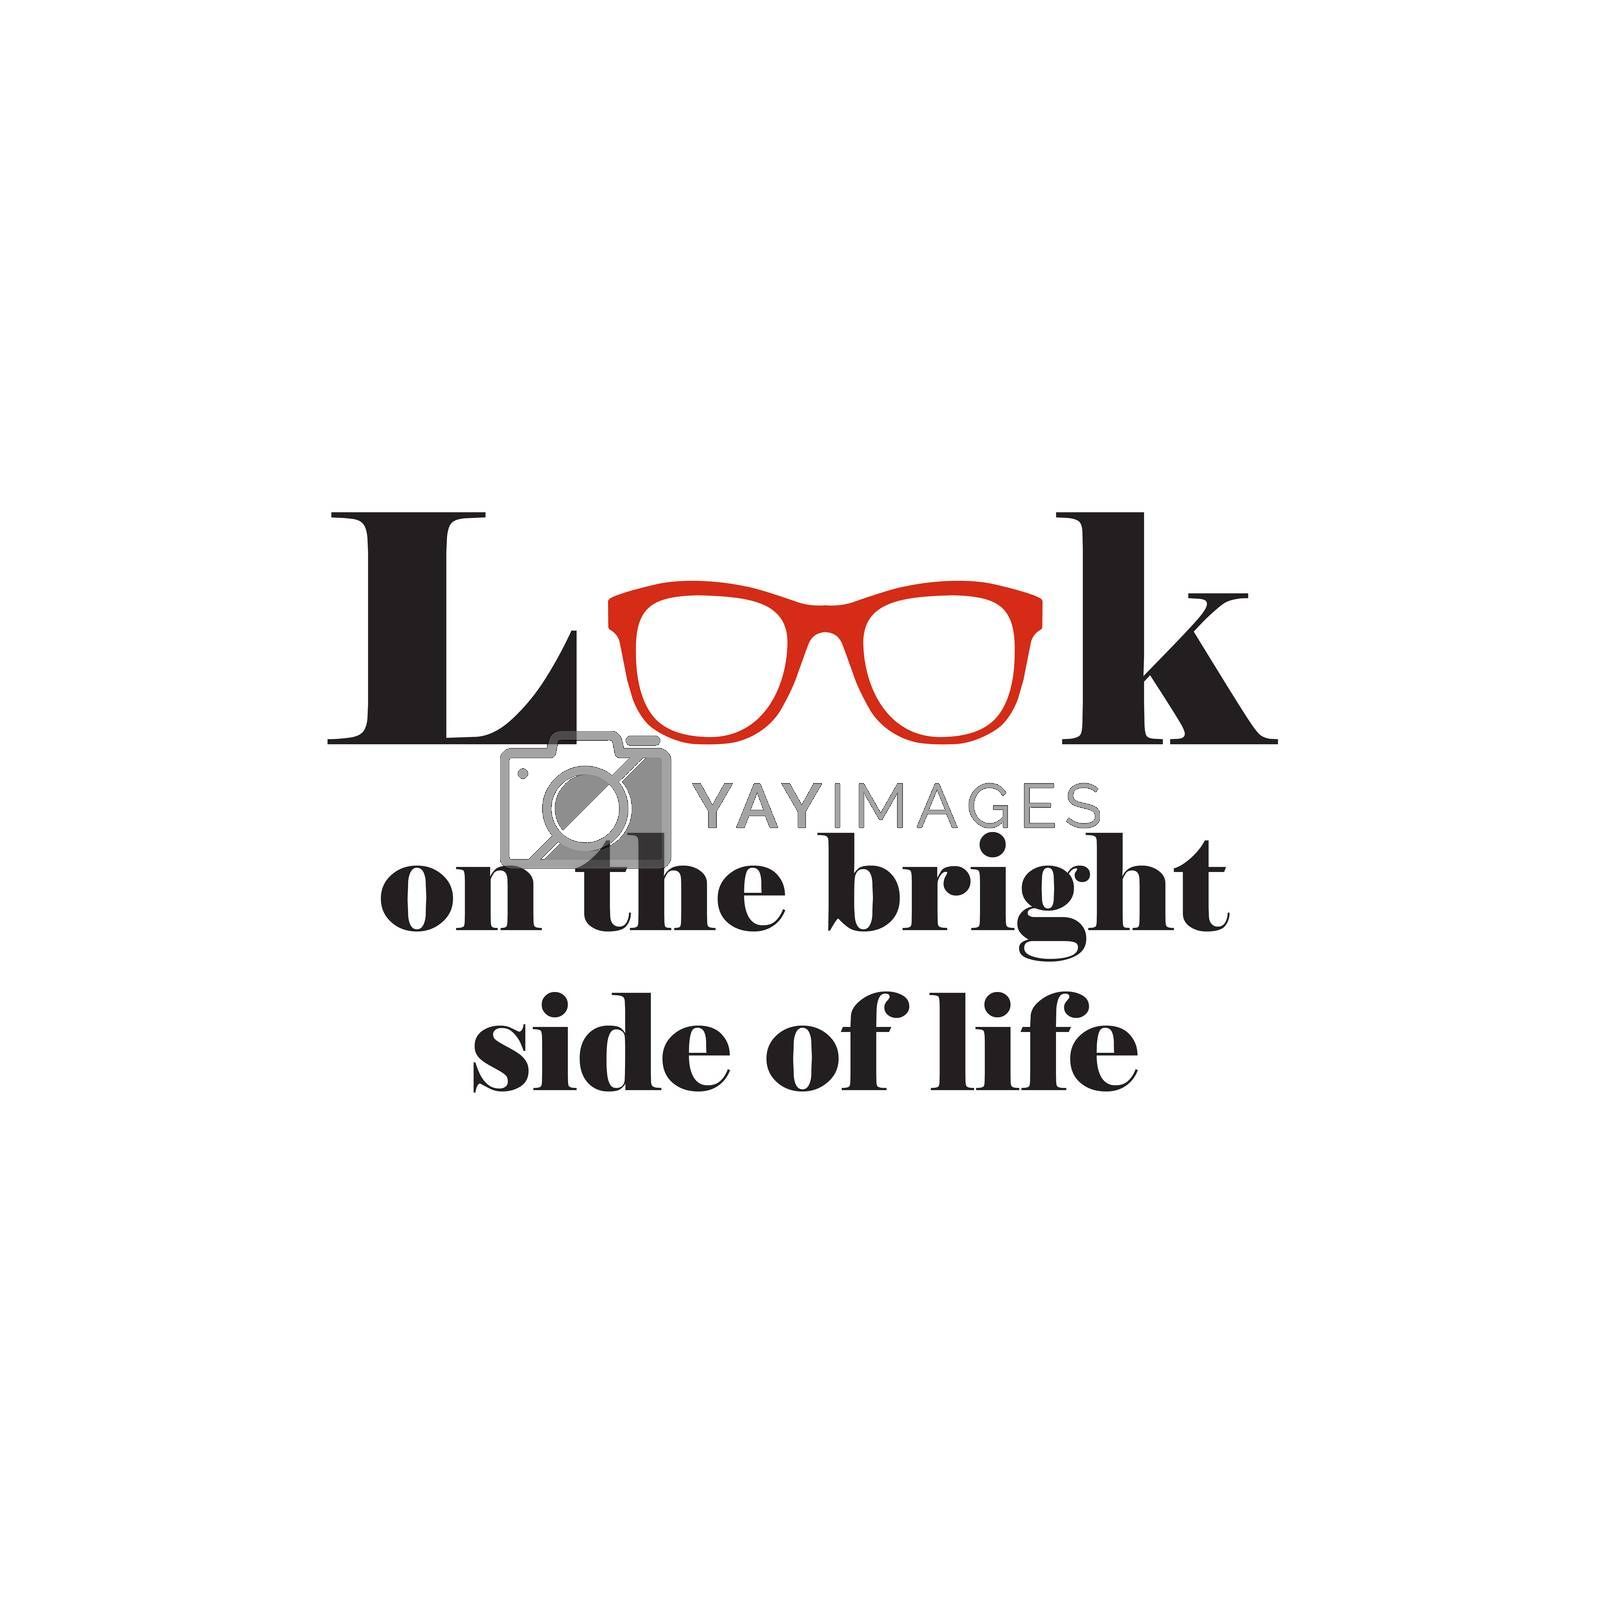 Motivational wall art quote about looking on the bright side of life. Minimalist black and white text on white background with creative red glasses visual